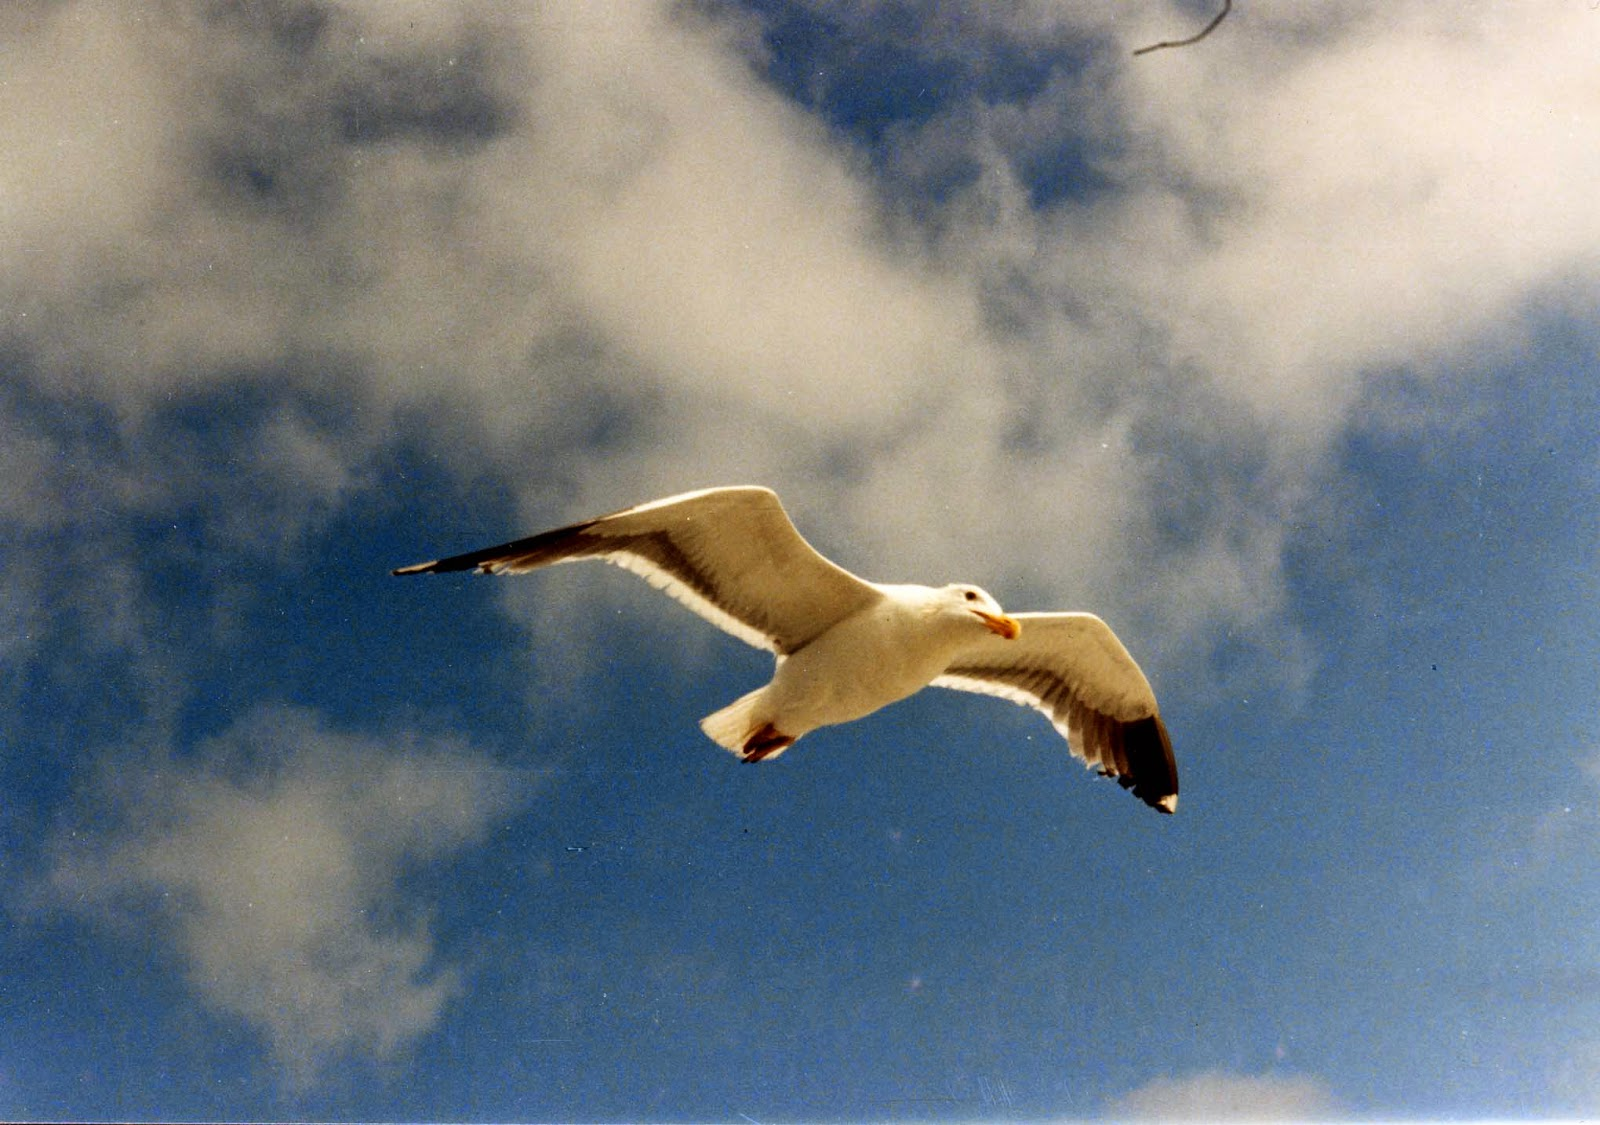 10 Books You Have To Read - Jonathan Livingston Seagull, by Richard Bach